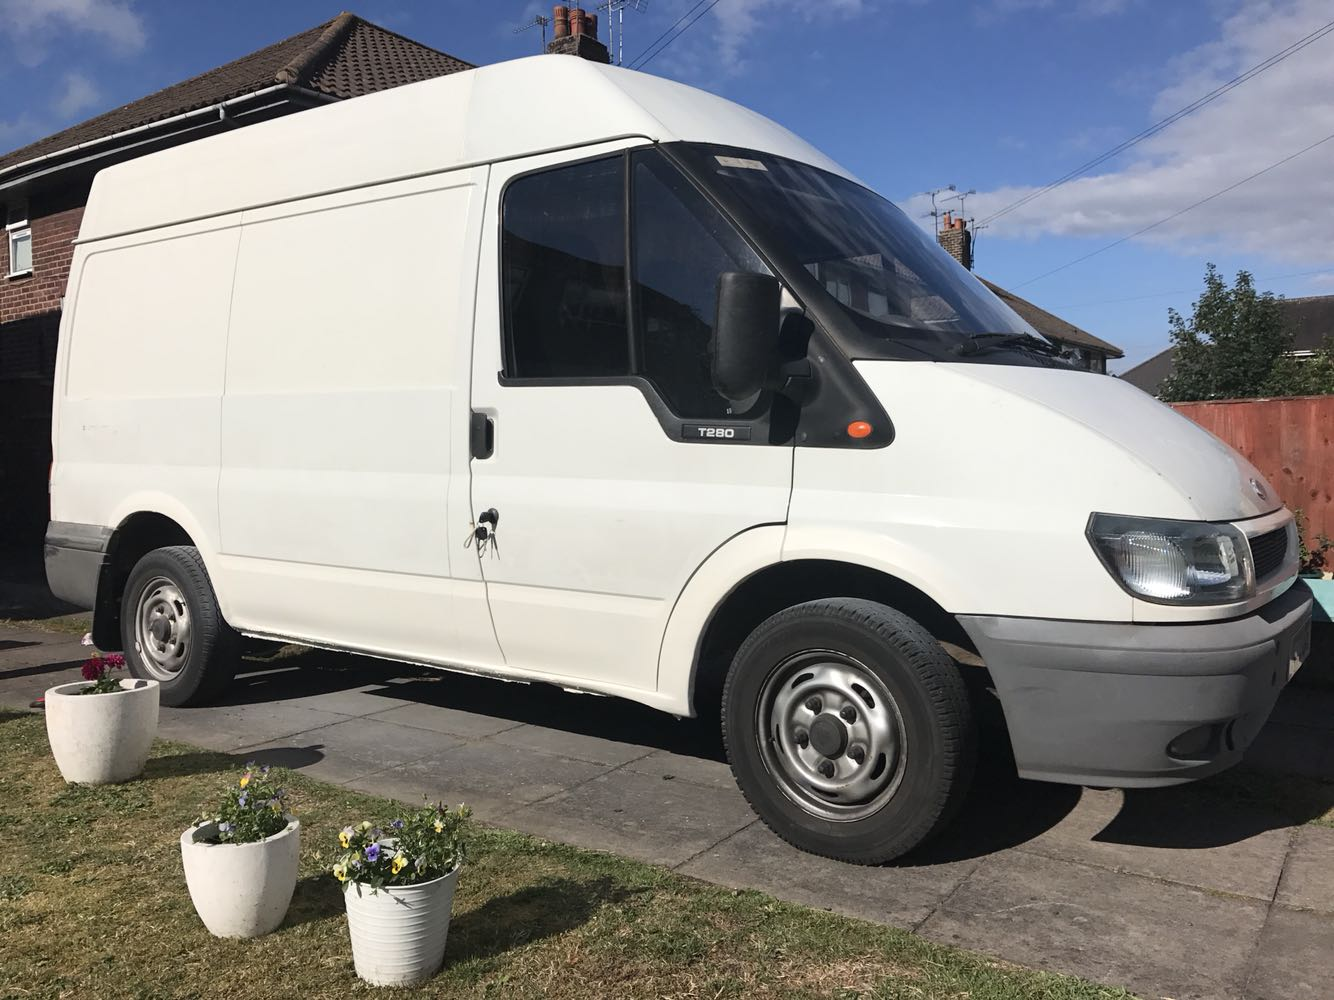 03 Plate Ford Transit Van Full MOT - Nantwich, Cheshire - Ford Transit 03 plate HPI clear 12months motShort wheel baseMed high top 2 keys central locking 103,900miles 2 previous owners cab in great condition no rips or tears in the seats. Back is clean and tidy and ply lined. Back doors are  - Nantwich, Cheshire